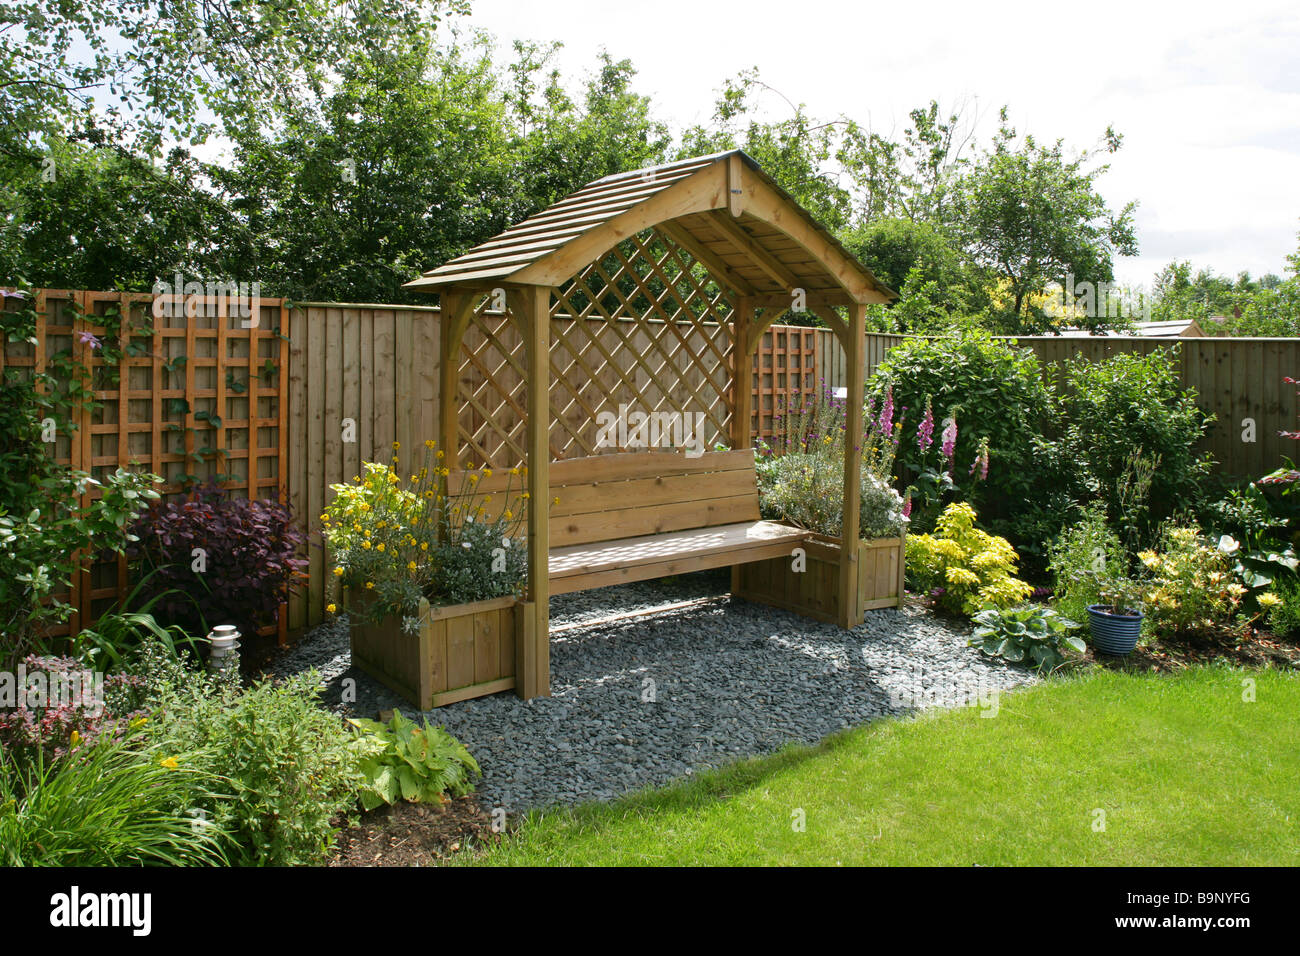 Garden Pergola Stock Photos & Garden Pergola Stock Images - Alamy